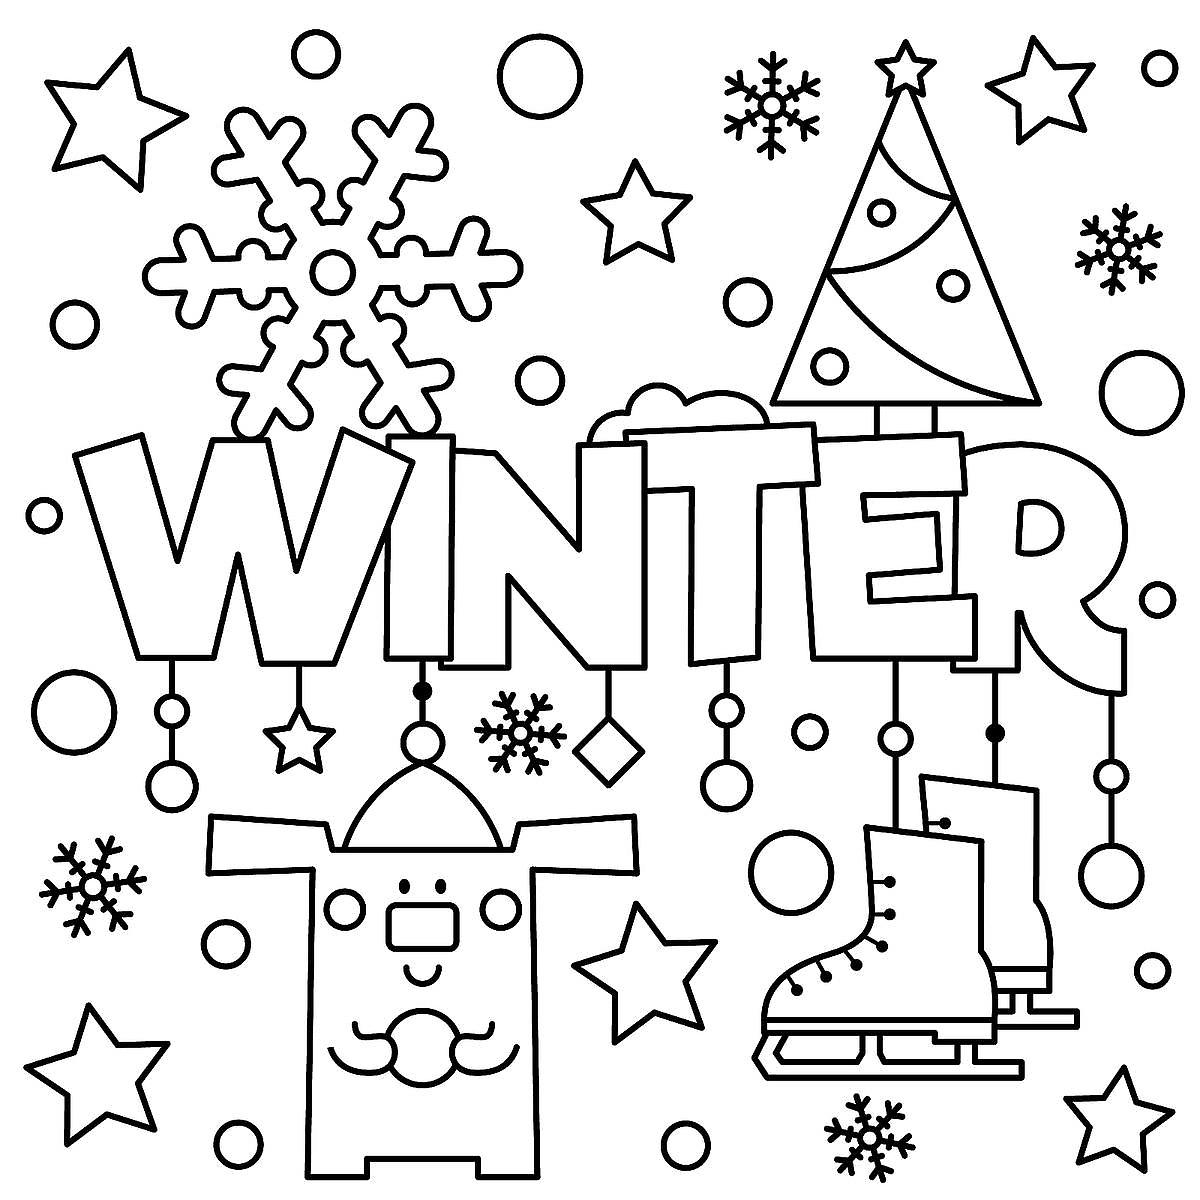 Winter Puzzle Amp Coloring Pages Printable Winter Themed Activity Pages For Kids